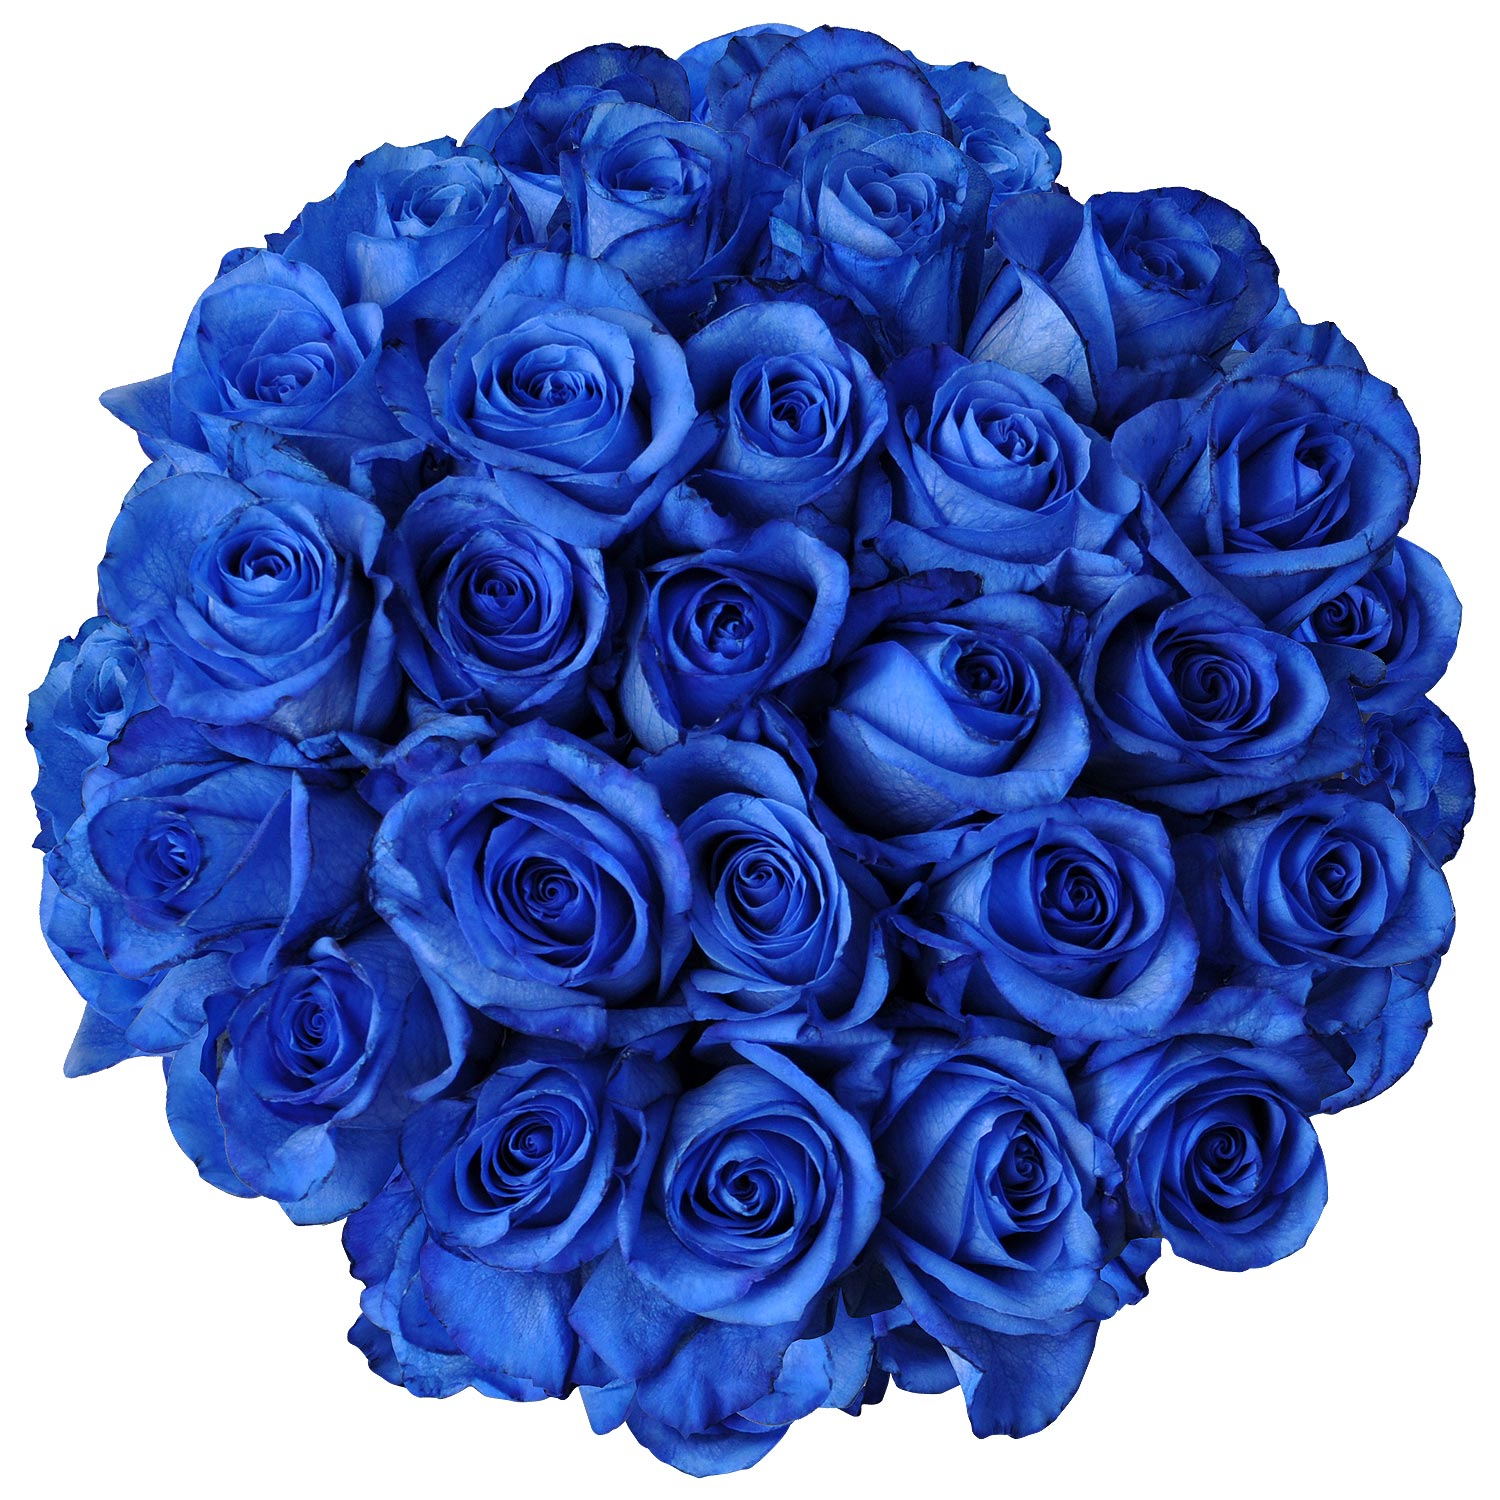 Natural Fresh Flowers - Tinted Blue Roses, 20\